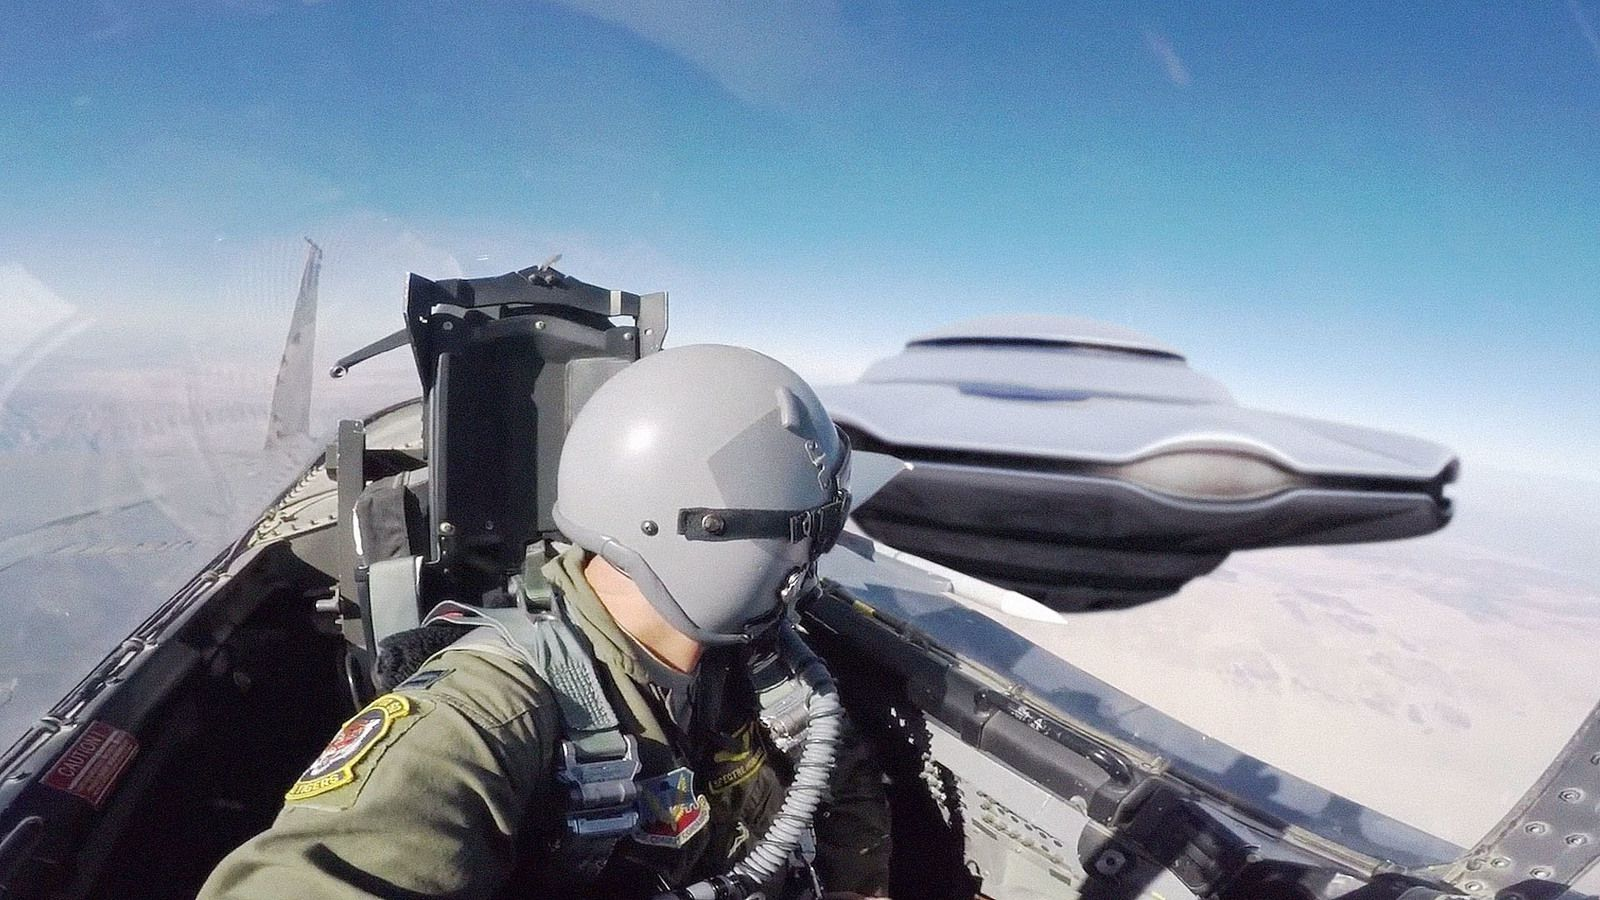 👽 UFO Encounter With F-16 Jet Fighter Over Nevada